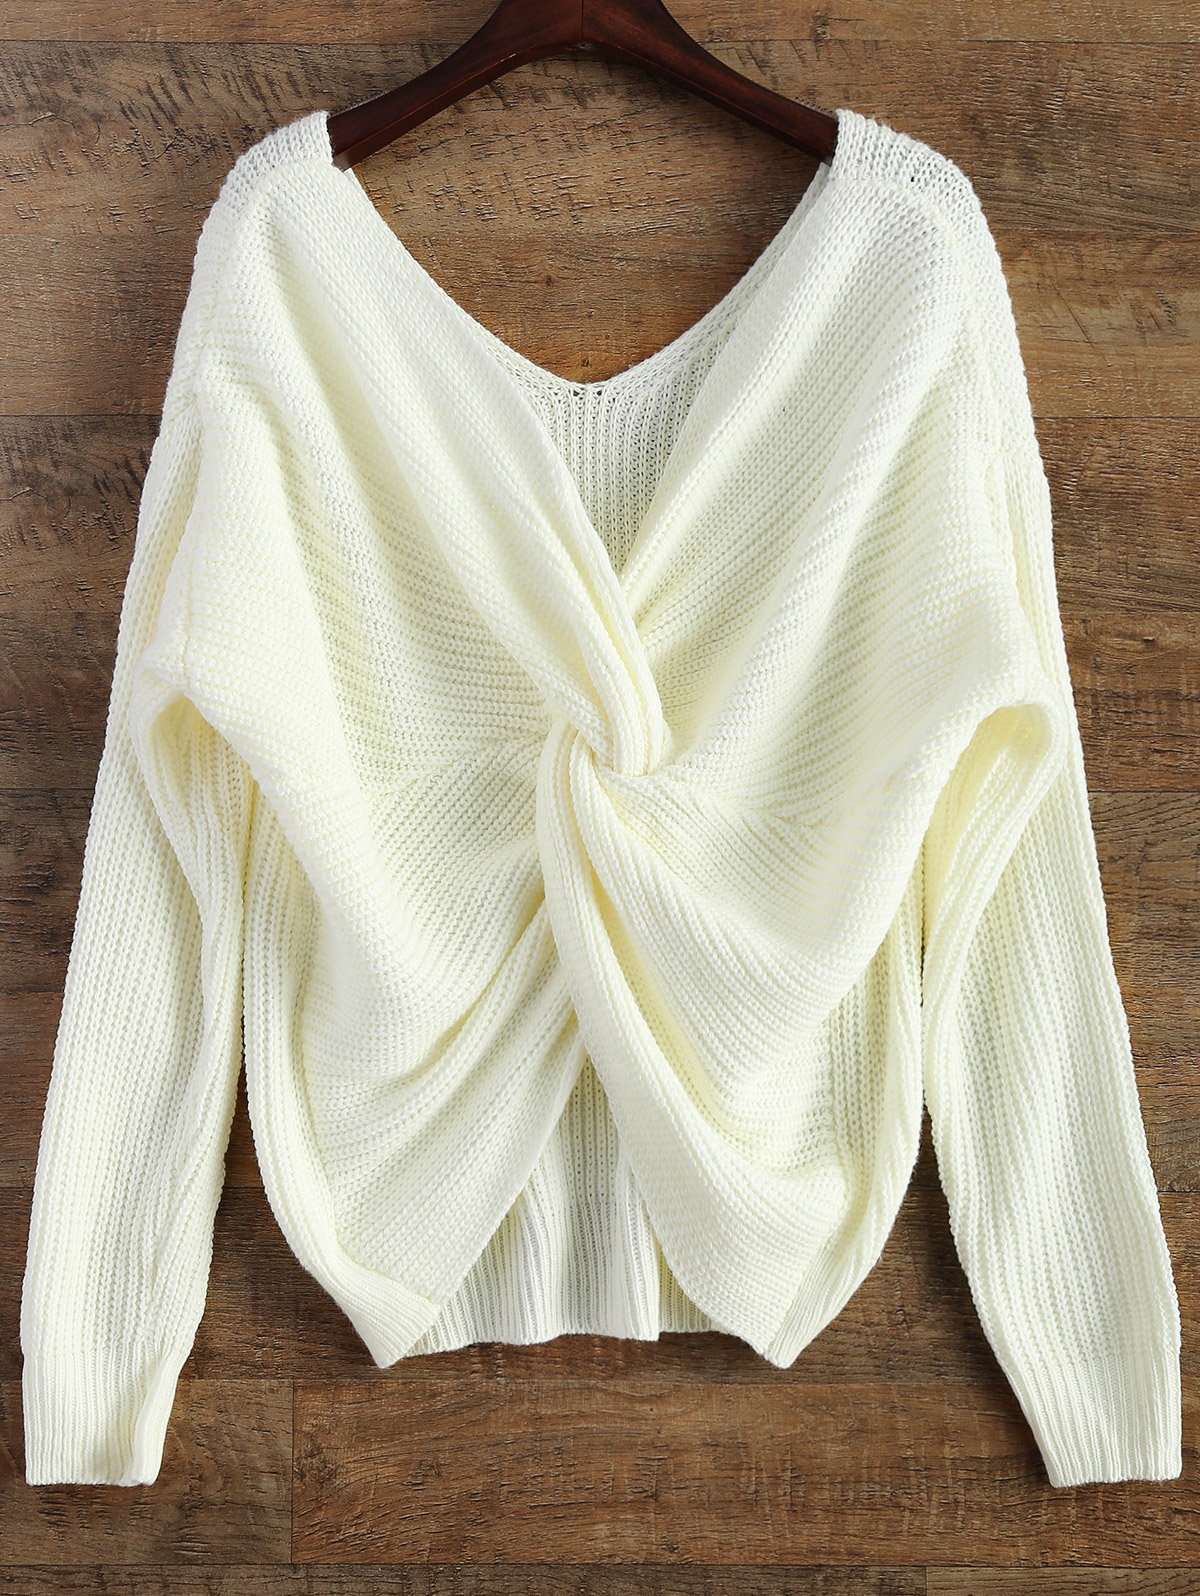 ZAFUL V Neck Twisted Back Sweater Pullovers Women Solid Long Bat Sleeve Tops Sexy Sweaters 2019 Autumn Winter